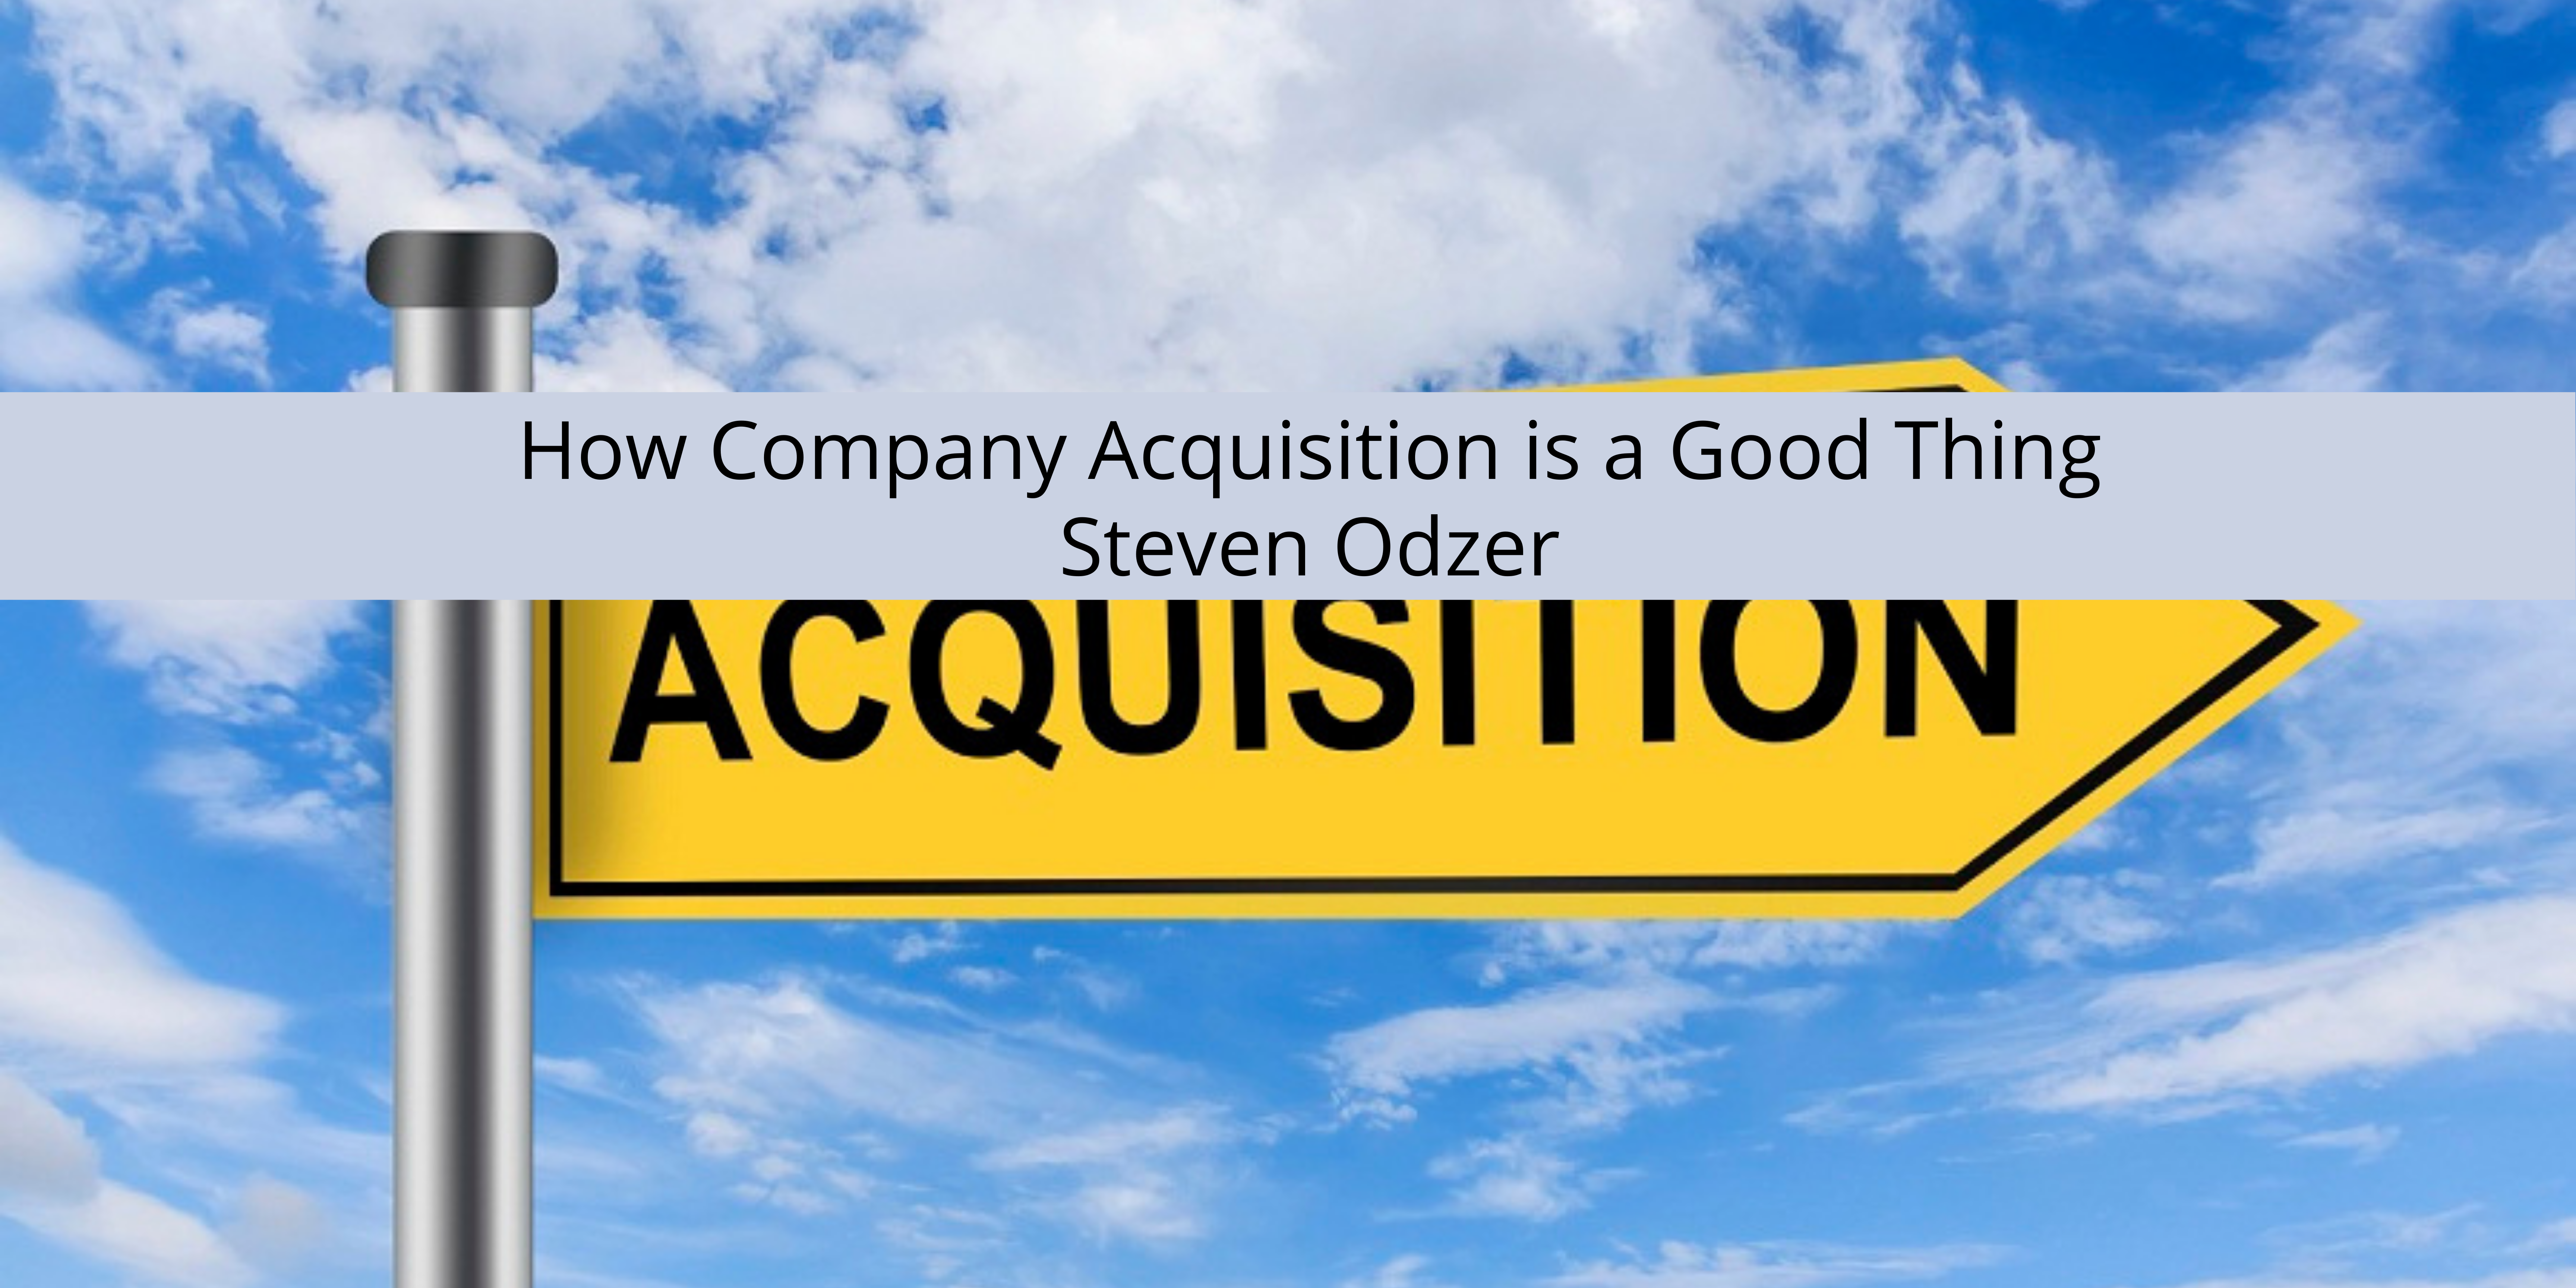 Steven Odzer Explains How Company Acquisition is a Good Thing